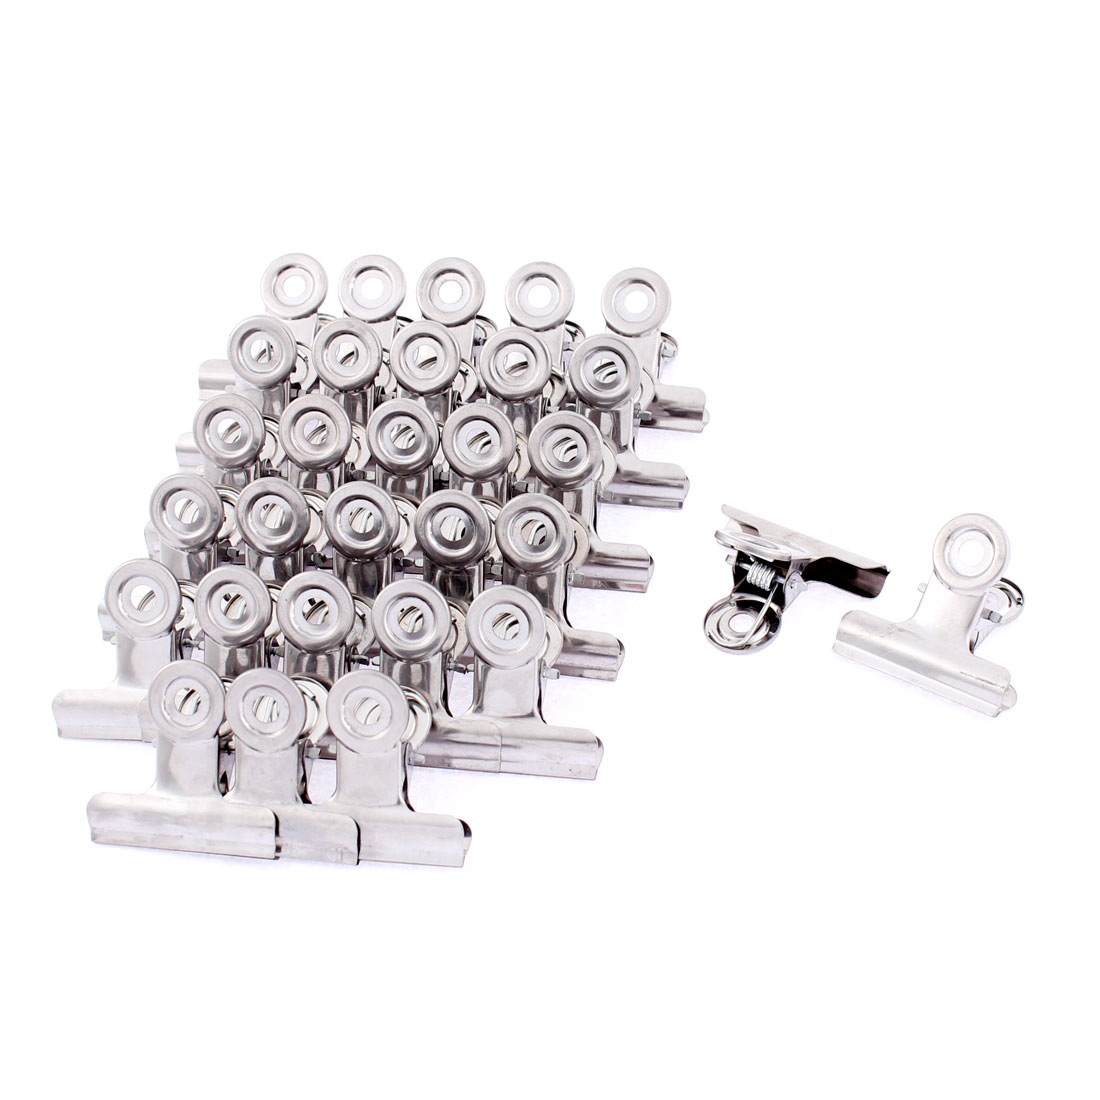 Unique Bargains 30 Pcs Household Stainless Steel Nonslip Multipurpose Clothing Clothespins Clips Silver Tone